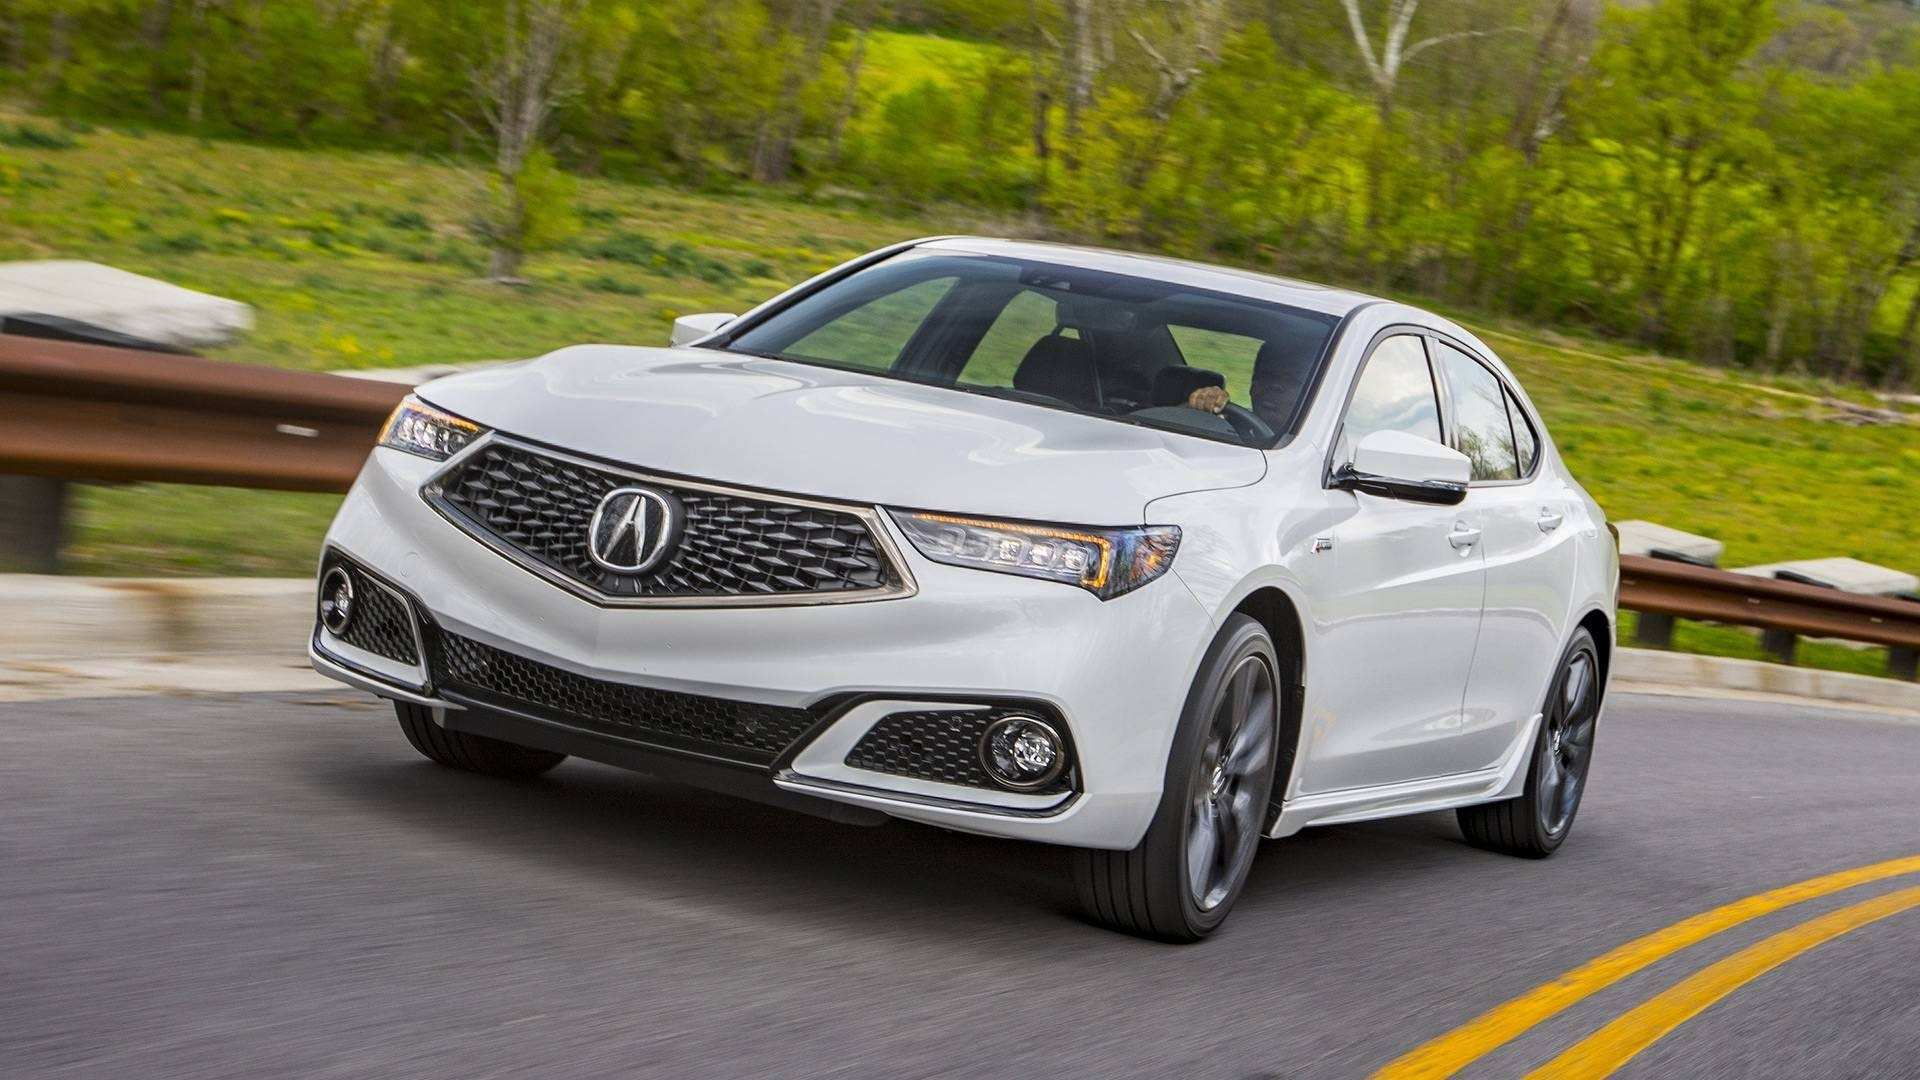 47 Concept of Best 2019 Acura Packages First Drive Spesification with Best 2019 Acura Packages First Drive